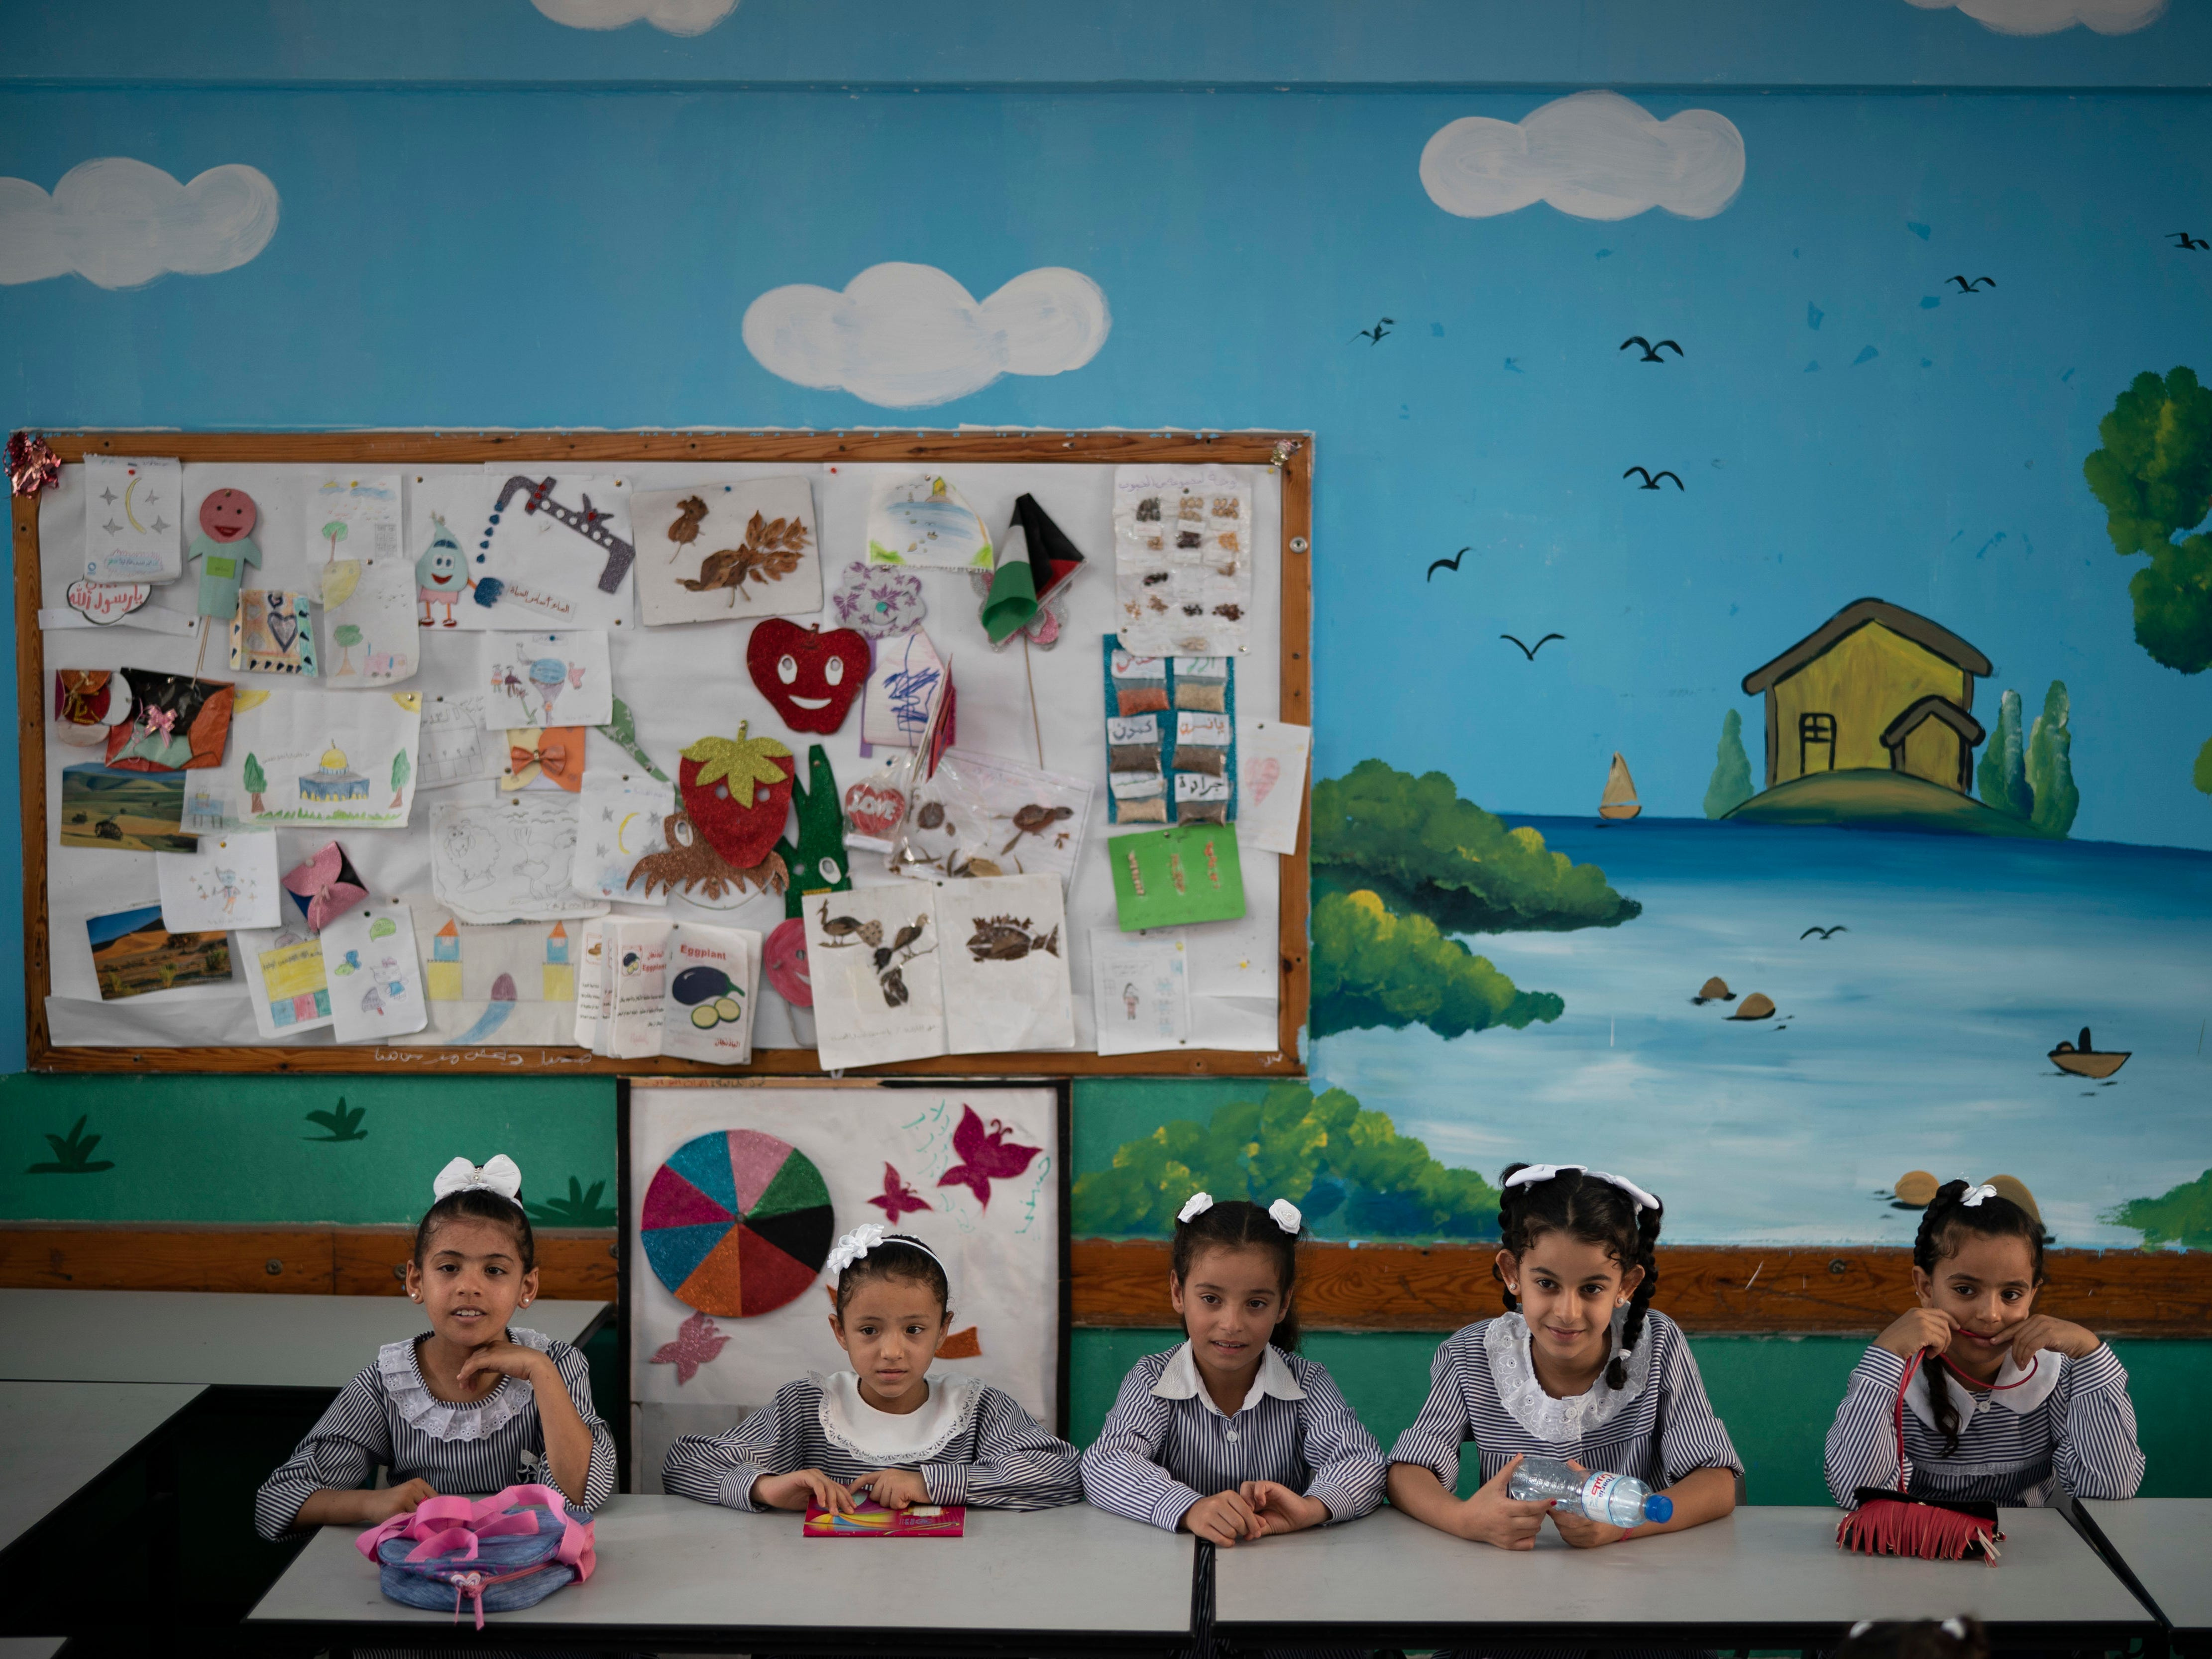 "File - In this Wednesday, Aug. 29, 2018 file photo, girls sit inside a classroom at an UNRWA school during the first day of a new school year in Gaza City. A spokesman for the Palestinian president says the American decision to cut funding for the U.N. agency aiding Palestinian refugees is ""an attack on the rights of the Palestinian people."" The U.S. supplies nearly 30 percent of the total budget of the U.N. Relief and Works Agency, or UNRWA, and had been demanding it carry out significant reforms. The decision cuts nearly $300 million of planned support. (AP Photo/Felipe Dana, File) ORG XMIT: DV101"